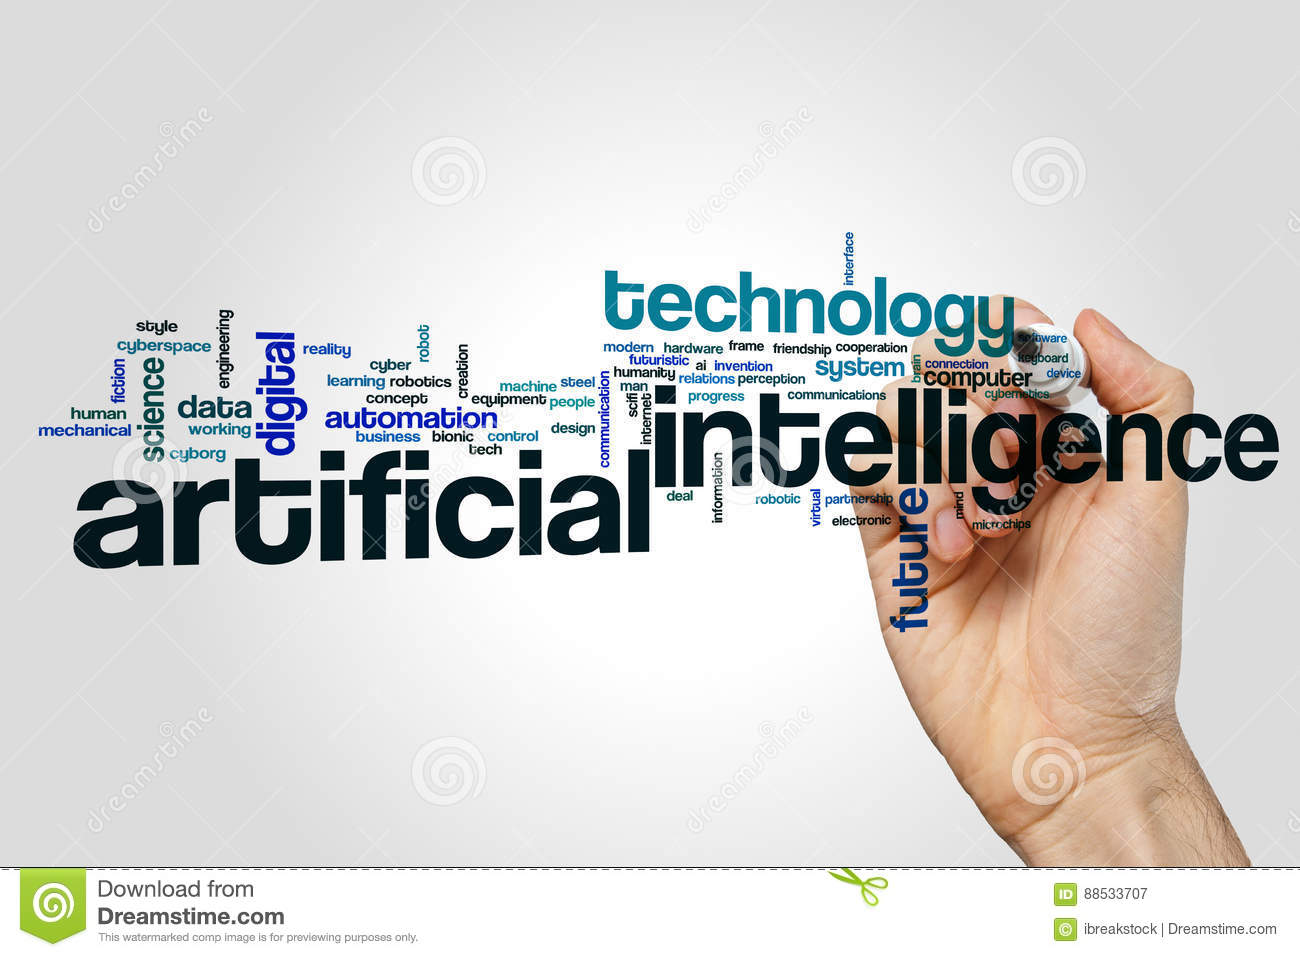 Artificial intelligence word cloud concept on grey background